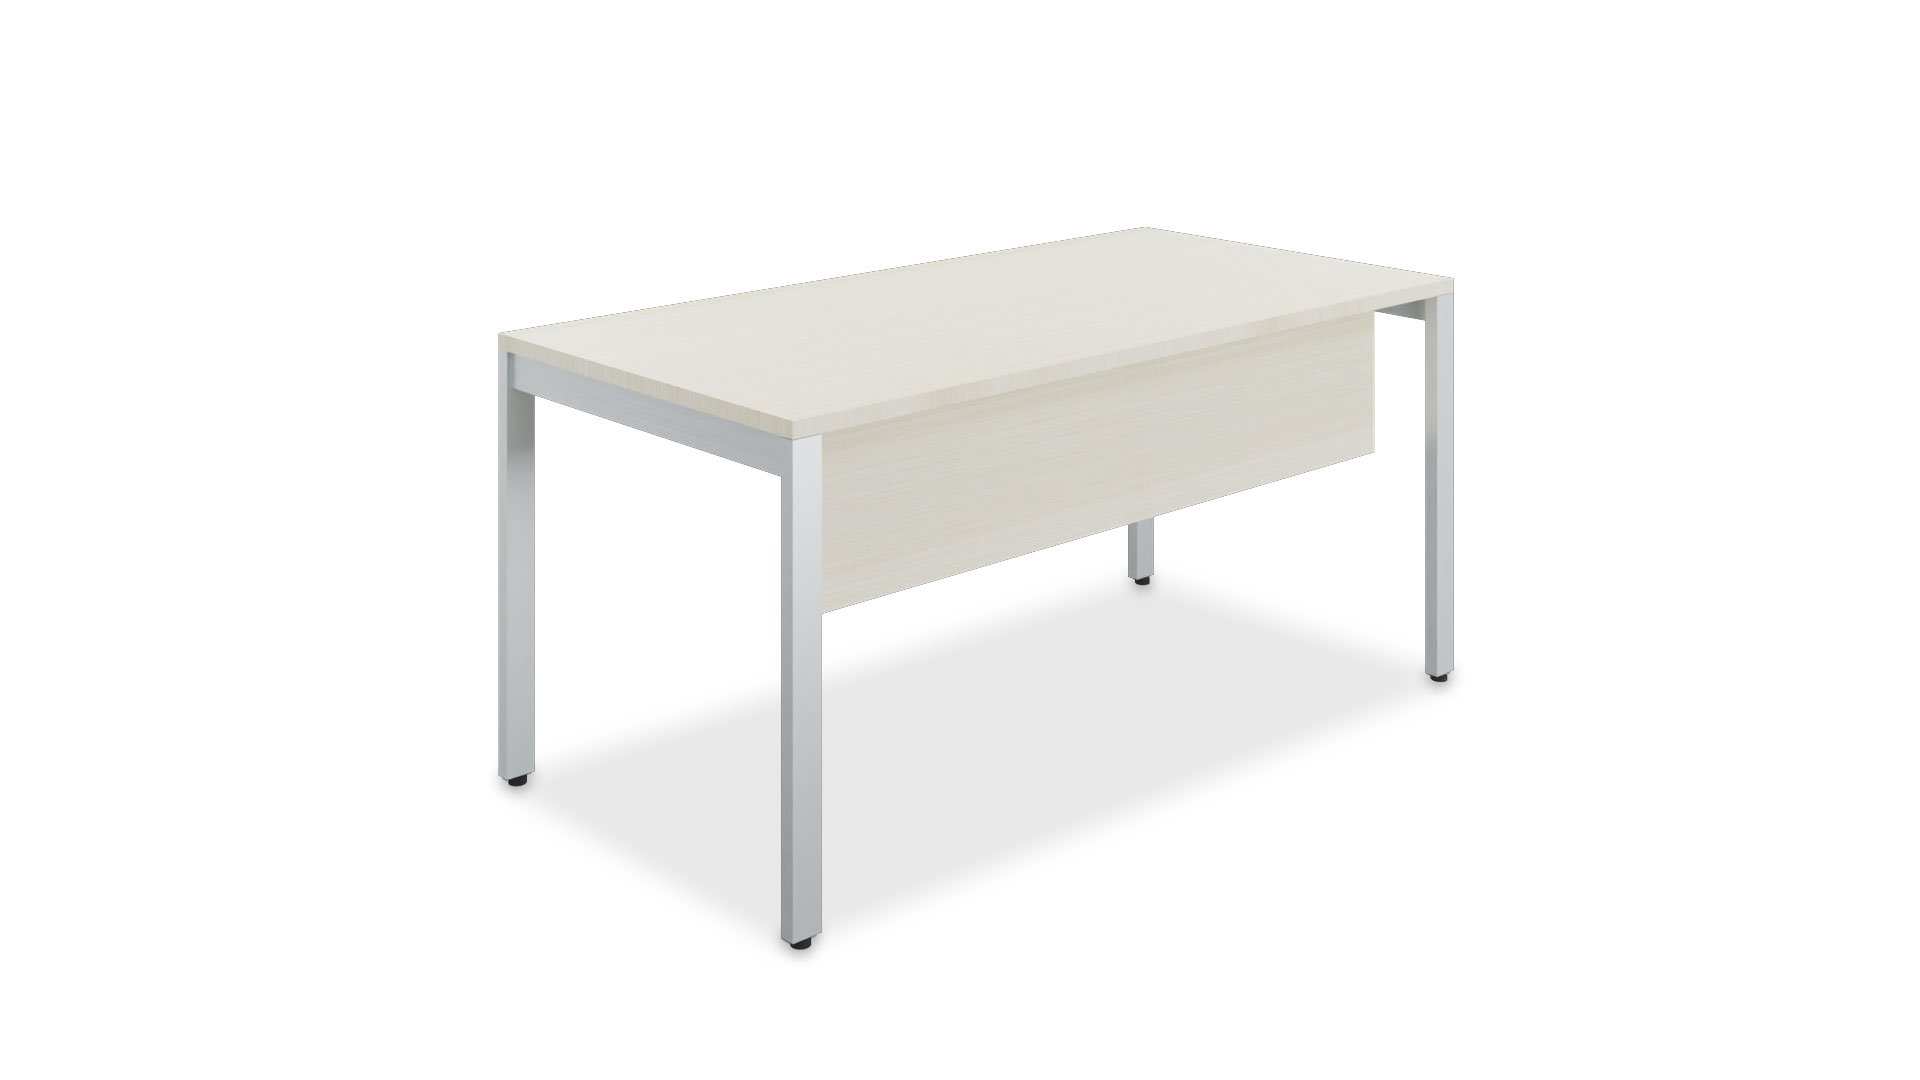 Four leg desk with modesty panel 2423